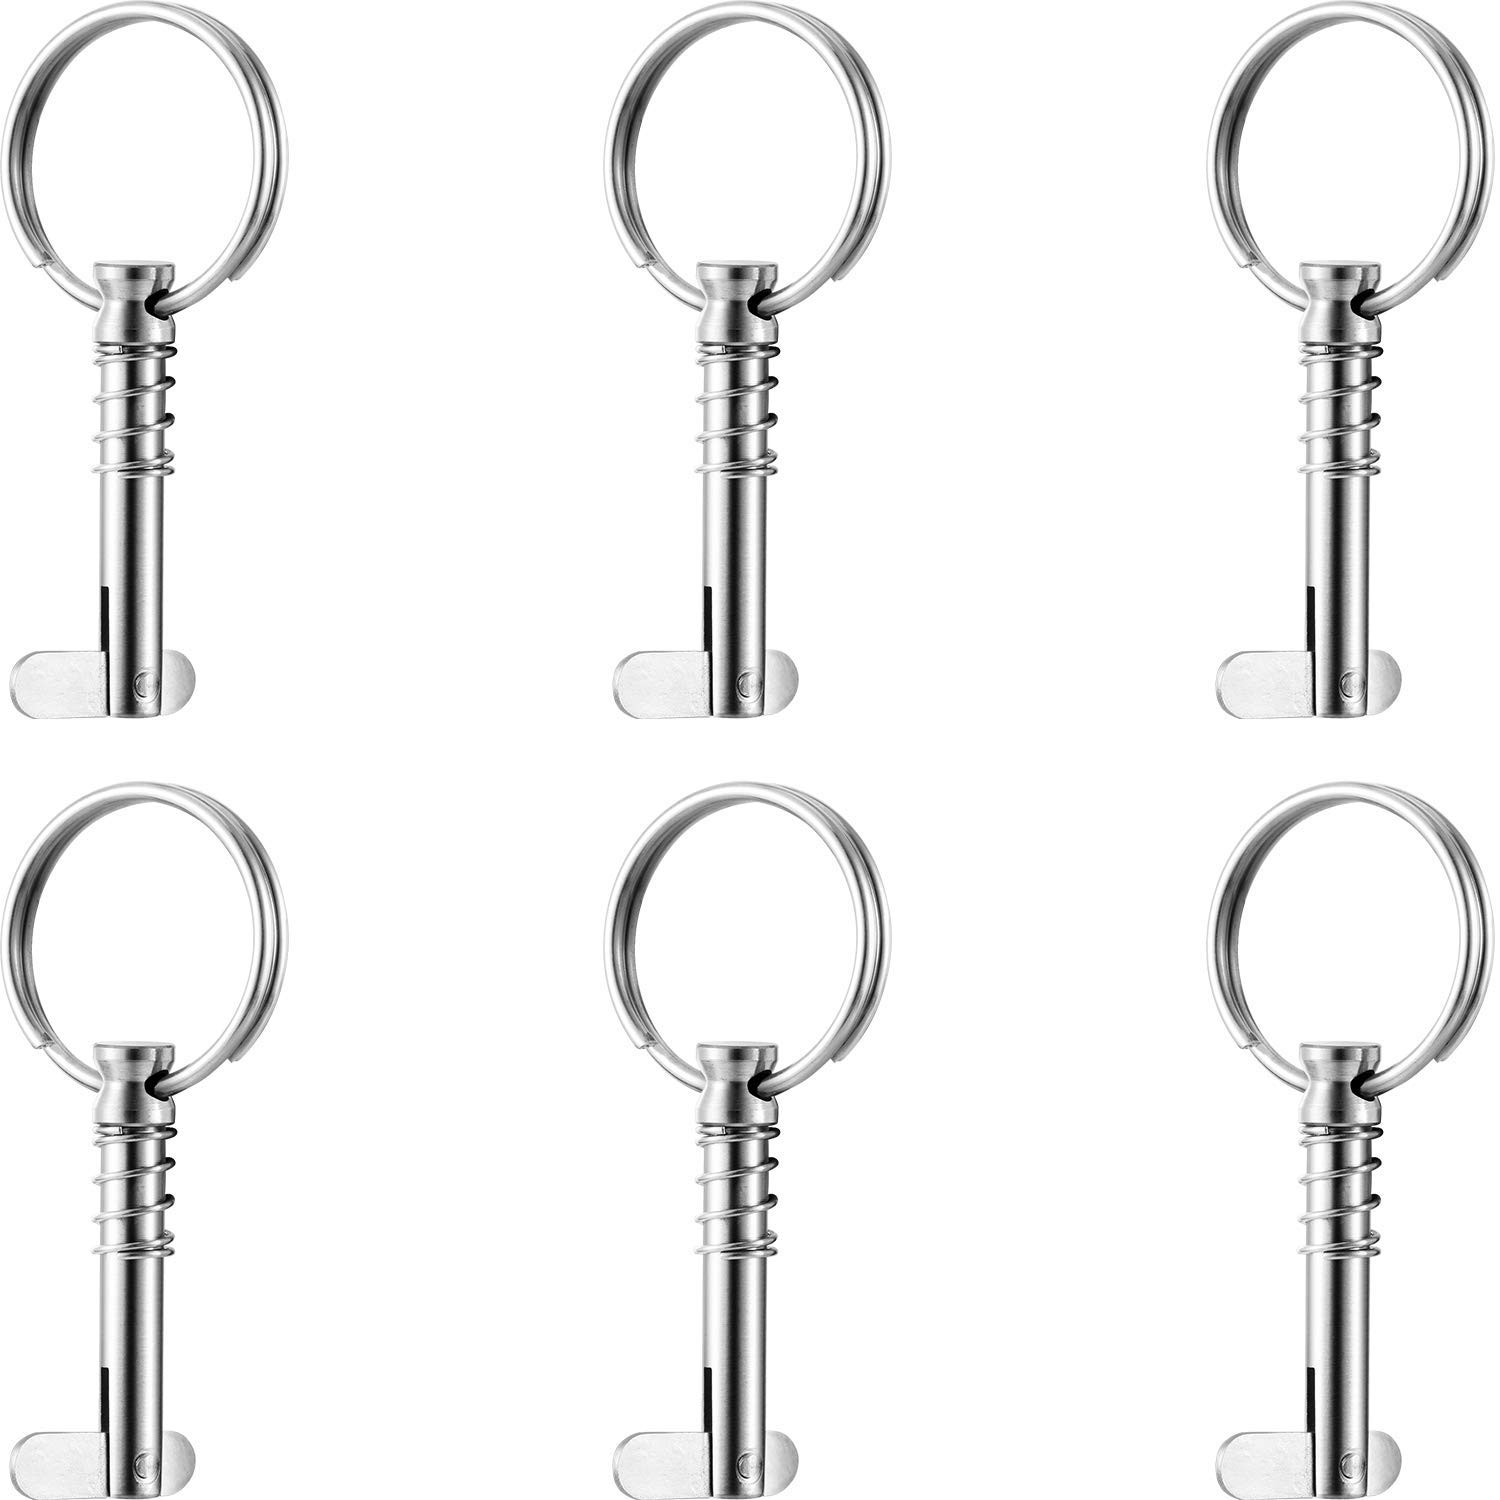 Marine Hardware ZOMCHAIN Quick Release Pin All Made of 316 Stainless Steel-4 Pack Bimini Top Pin,1//4 Diameter w//Drop Cam /& Spring